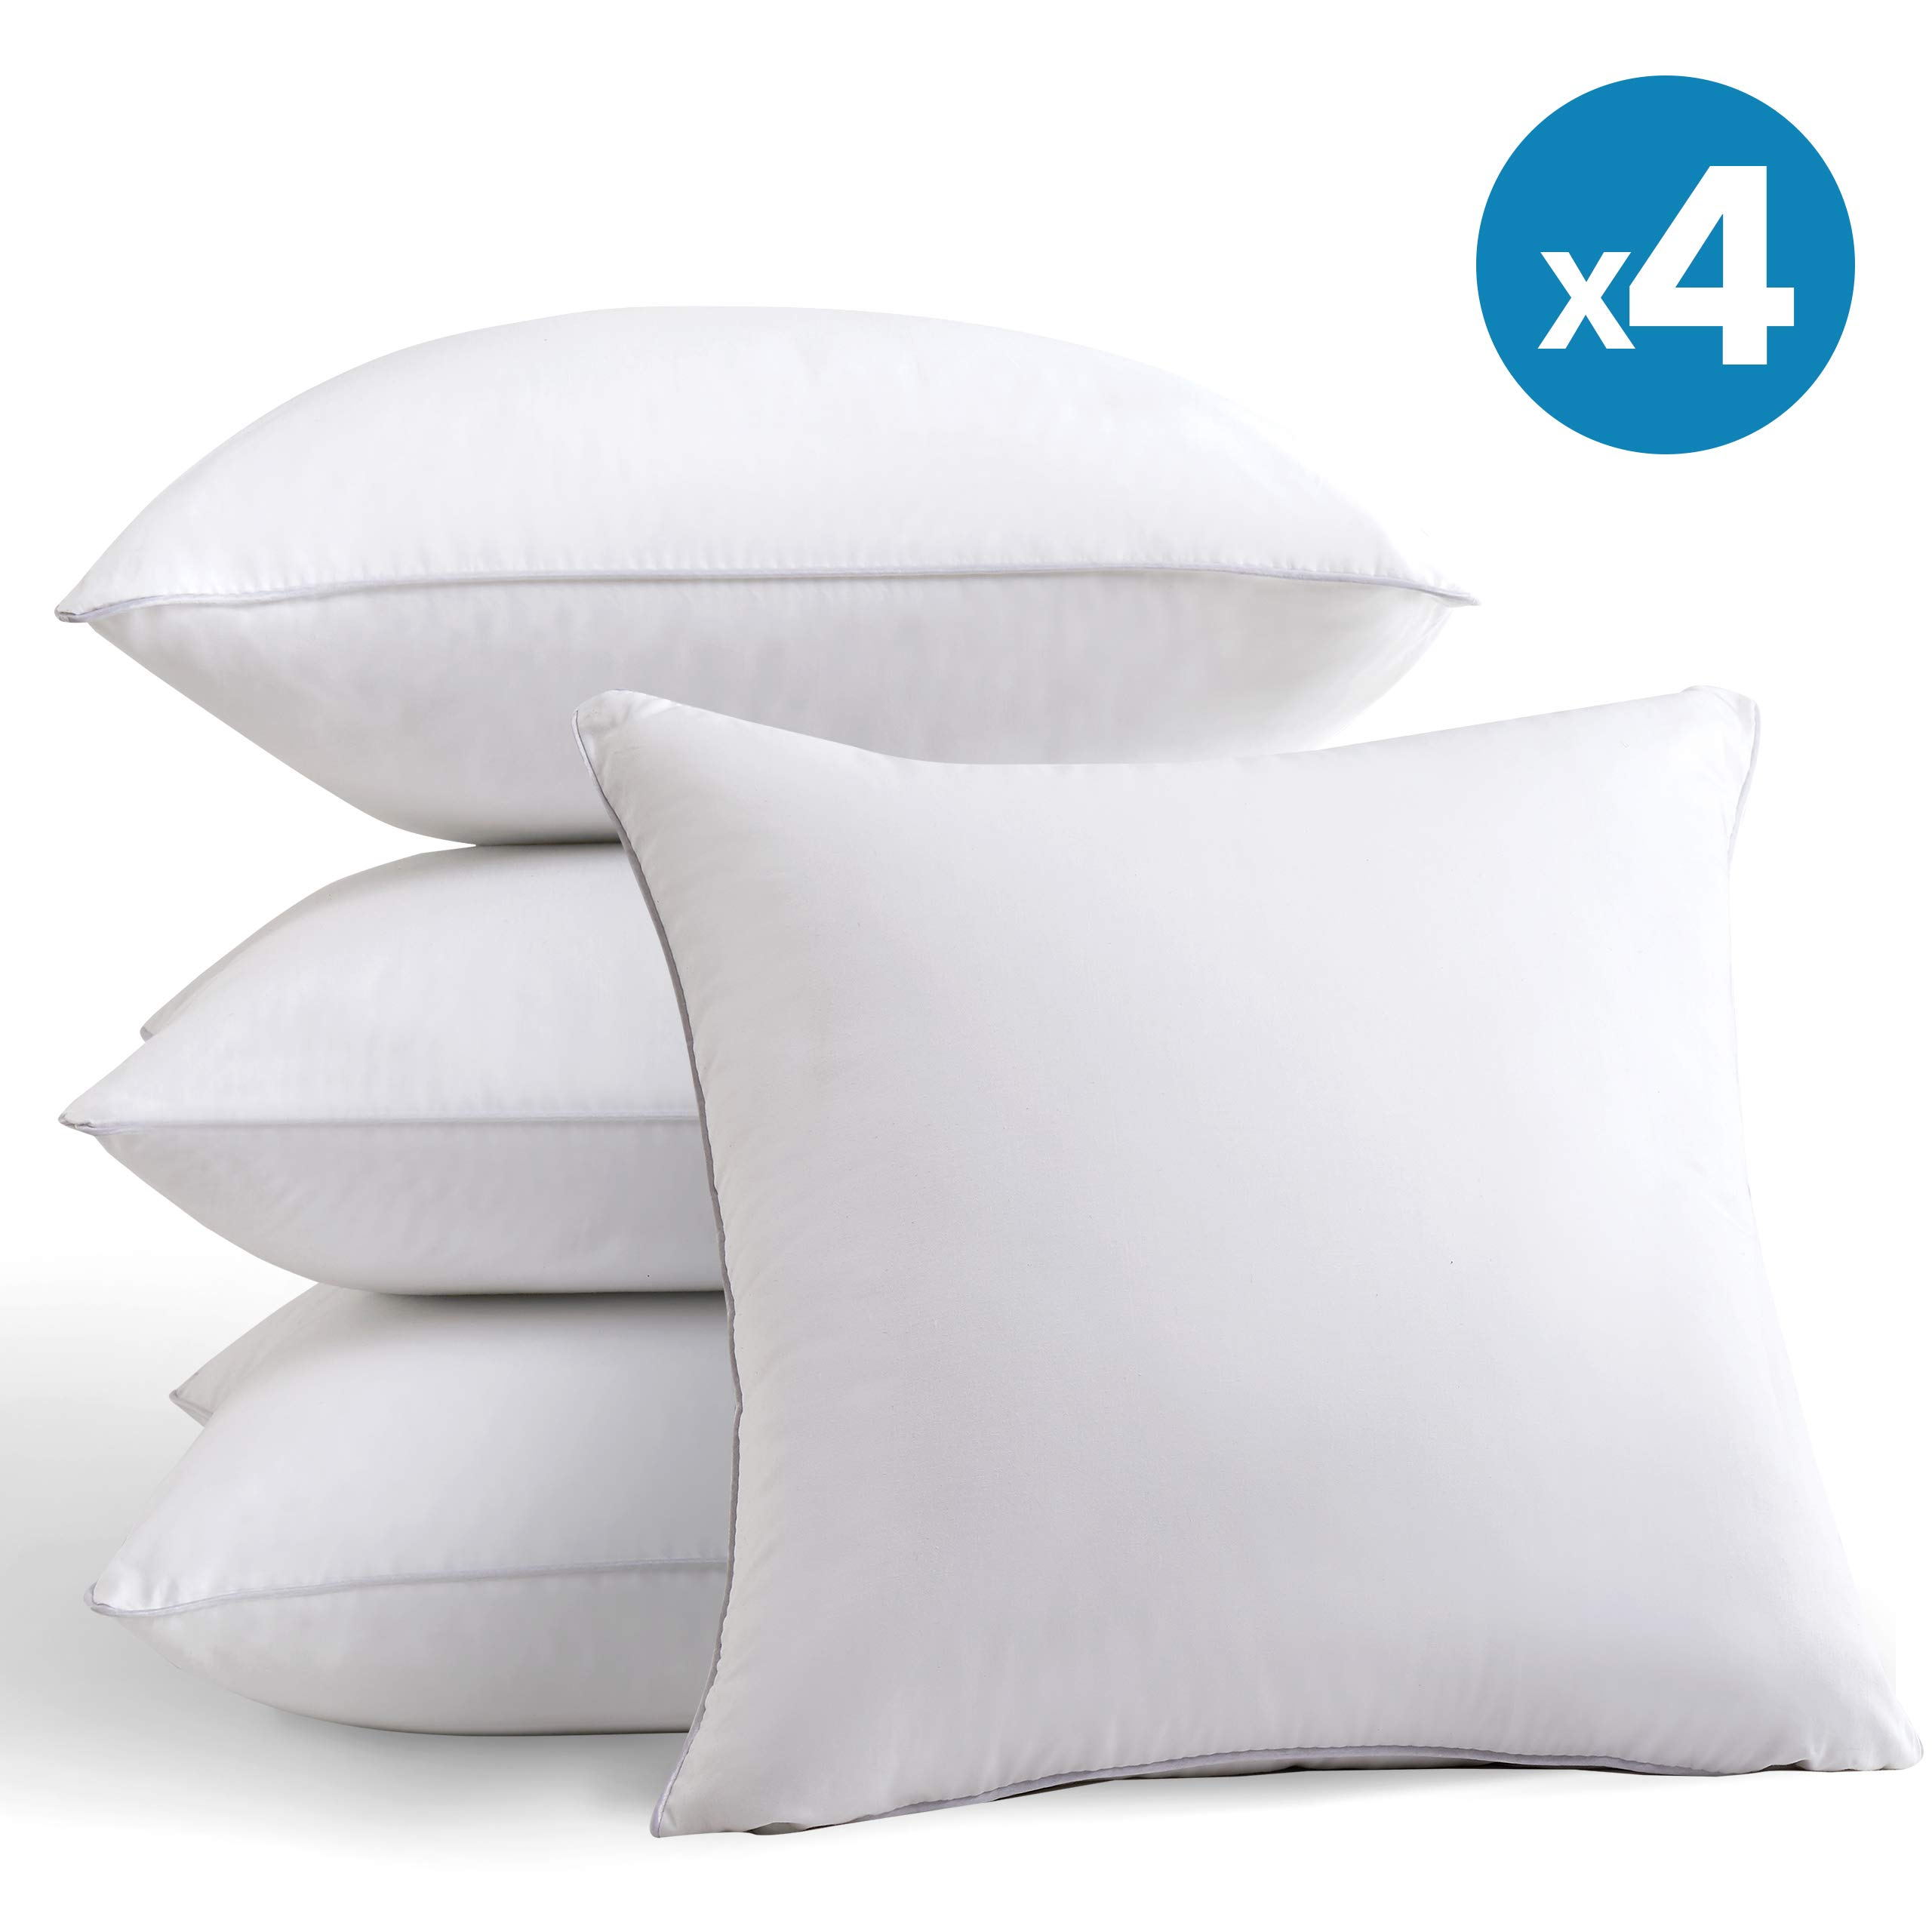 MoMA 18 x 18 Pillow Inserts (Set of 4) - Throw Pillow Inserts with 100% Cotton Cover - 18 Inch Square Interior Sofa Pillow Inserts - Decorative Pillow Insert Pair - White Couch Pillow